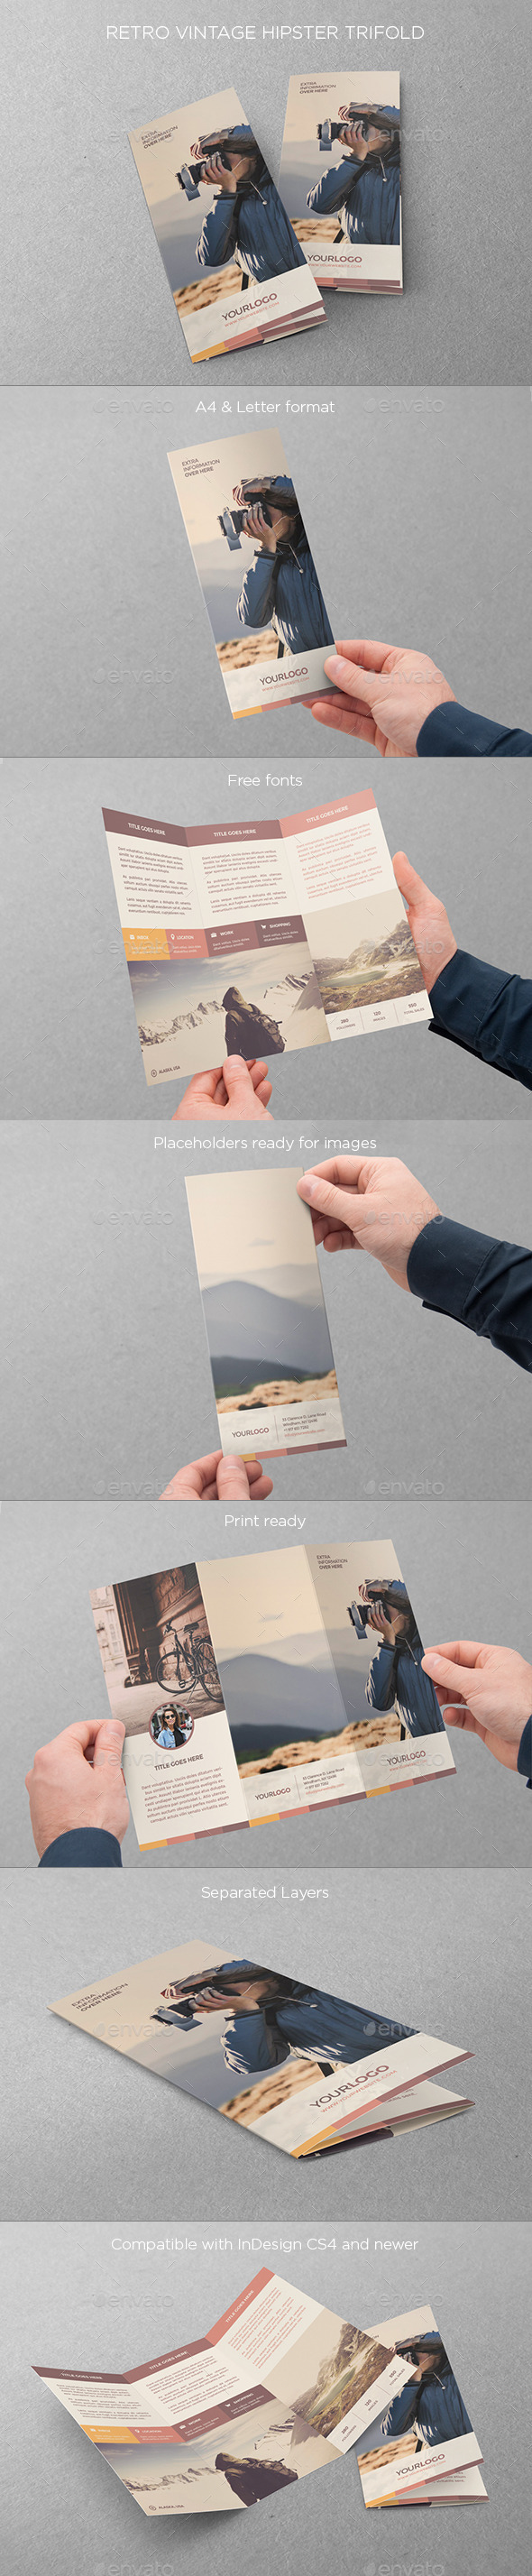 GraphicRiver Retro Vintage Hipster Trifold 11084095